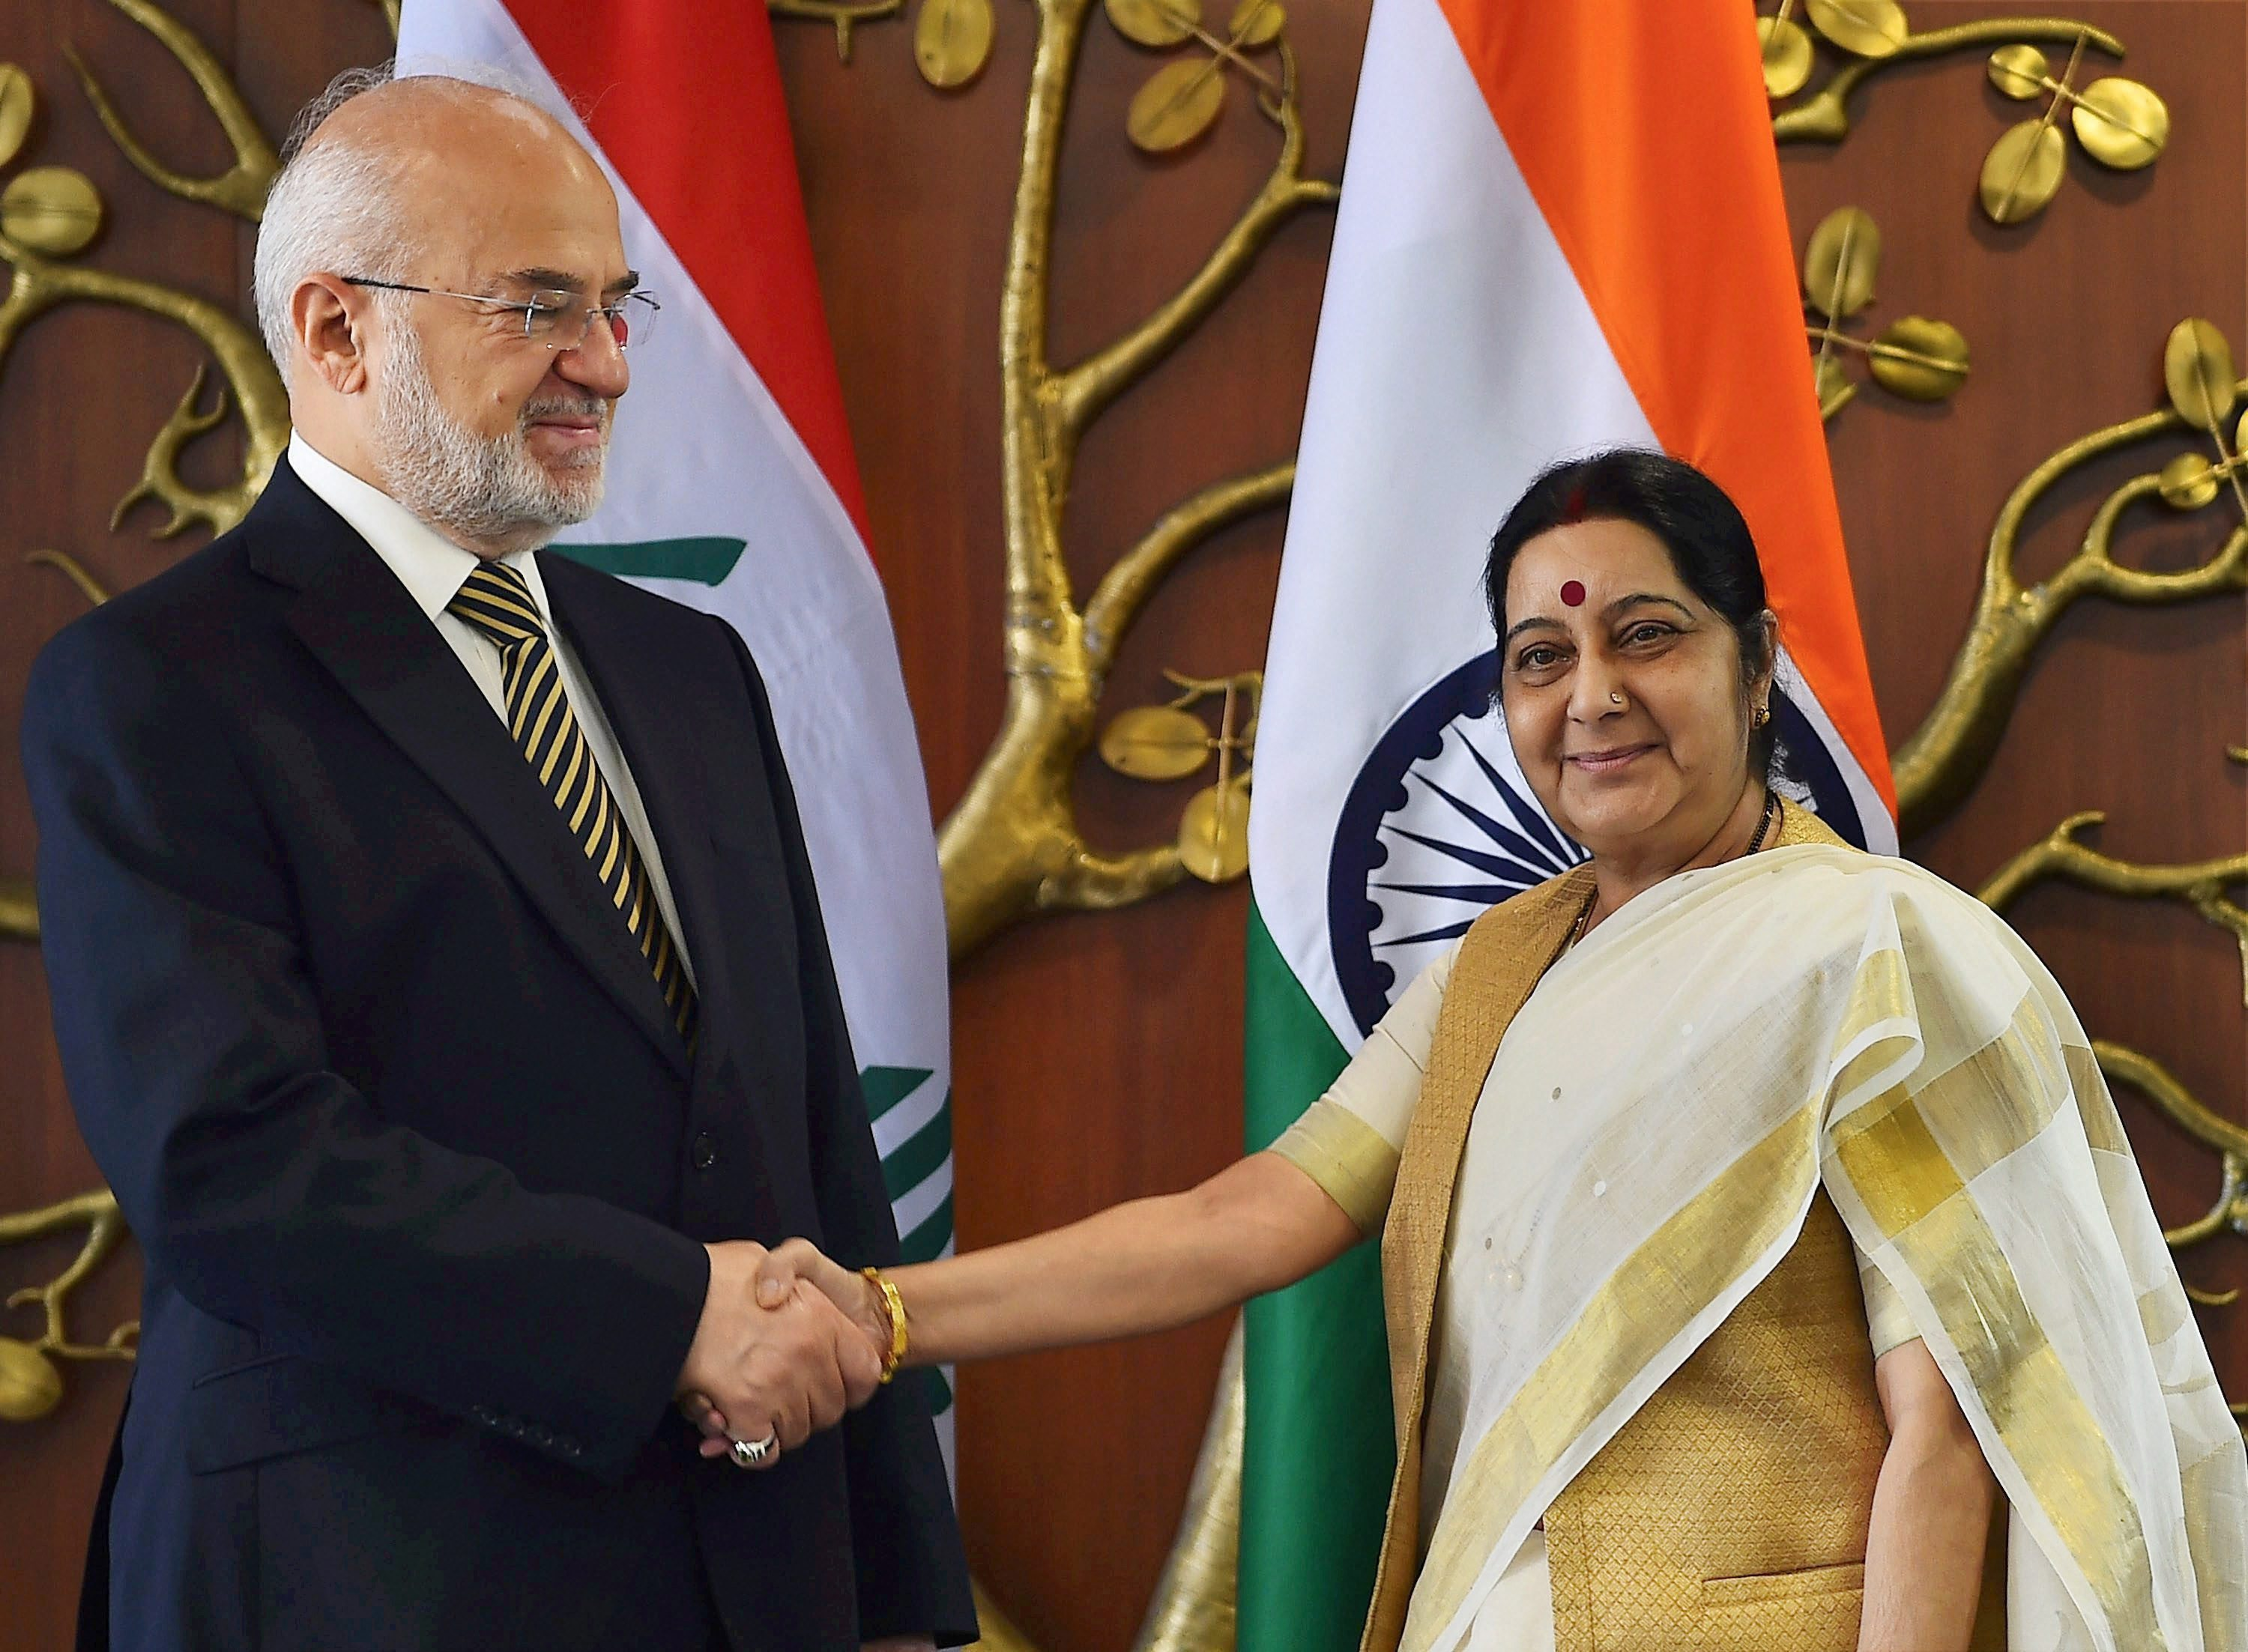 Iraqi FM arrives in India on 5-day visit